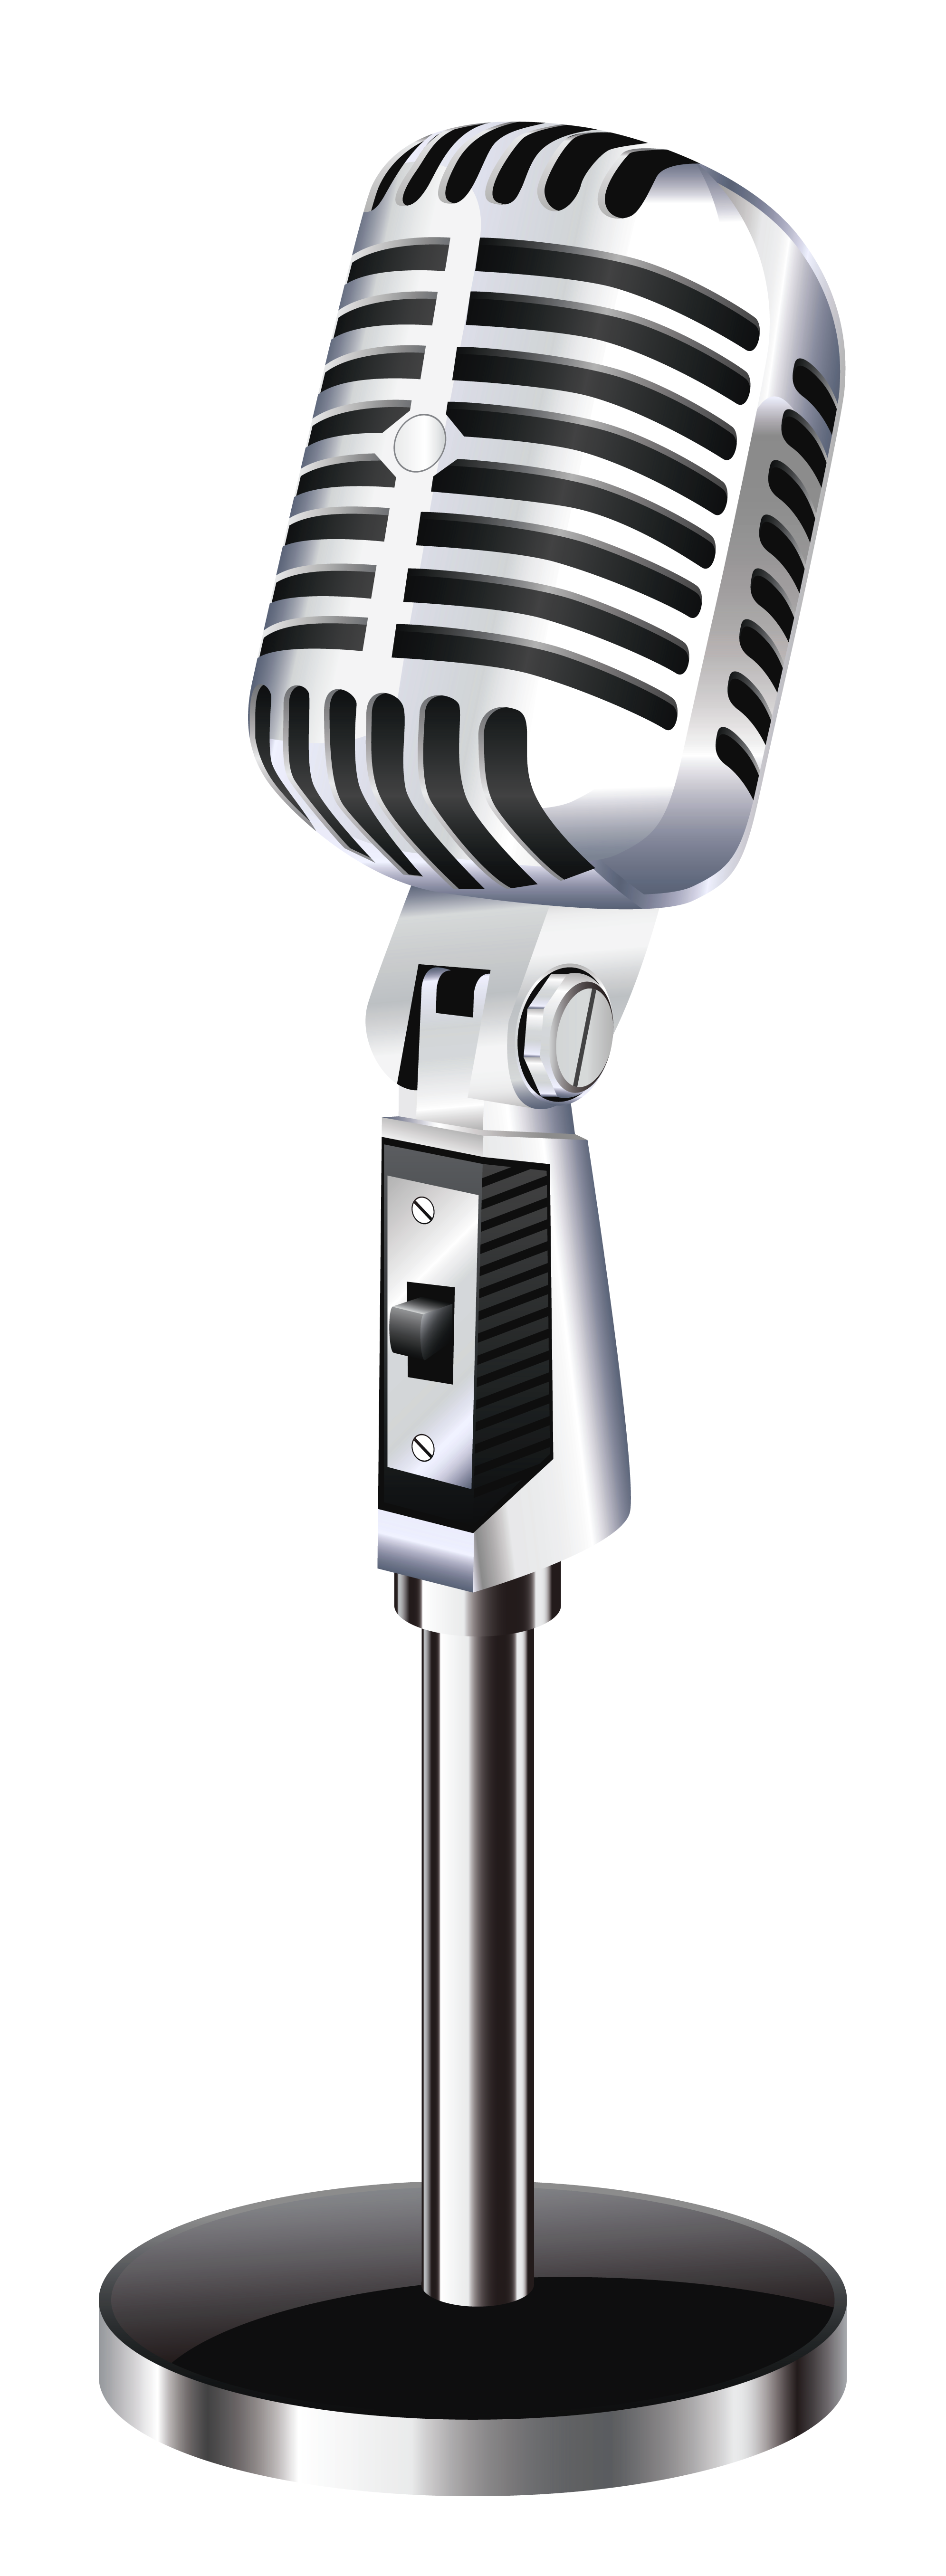 microphone clipart transparent